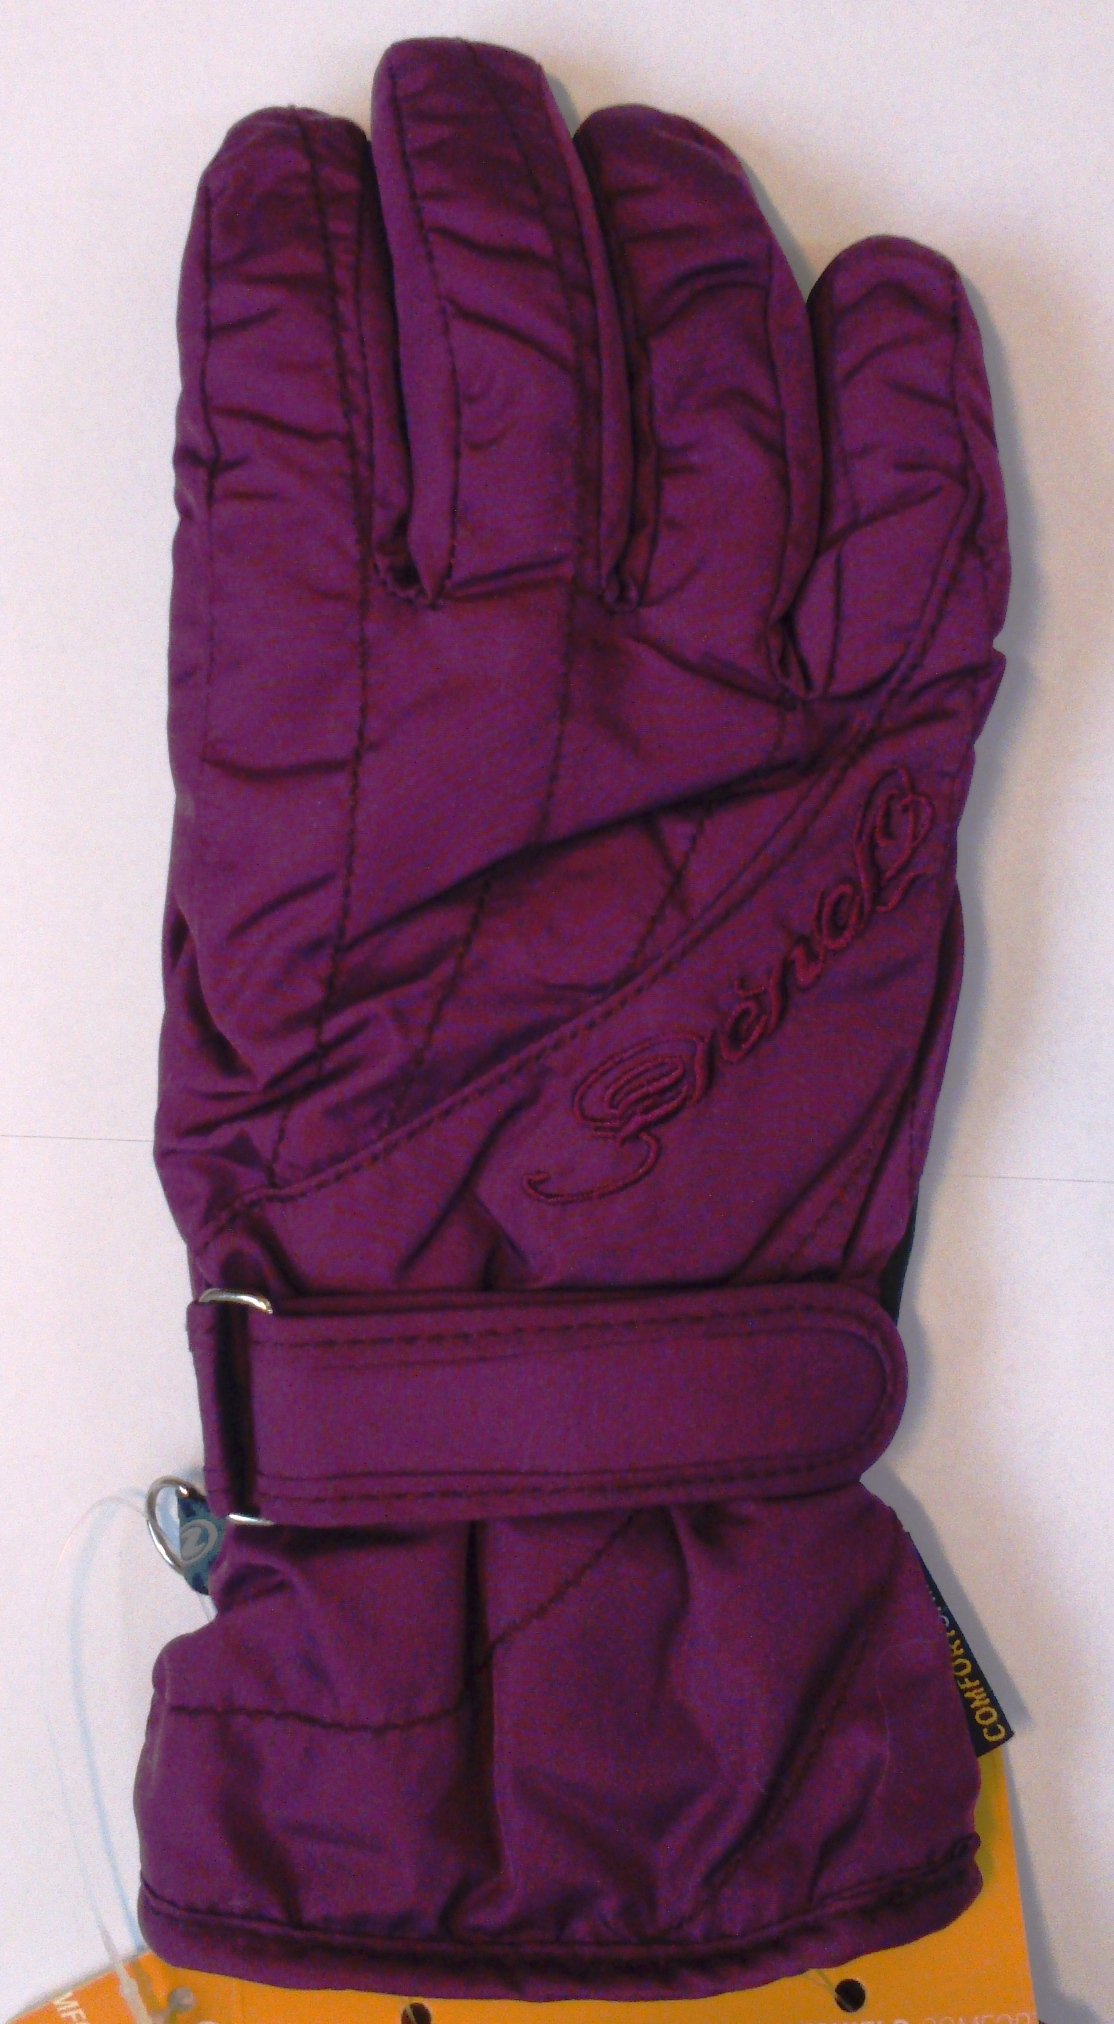 ZIENER KOSTA glove lady, purple